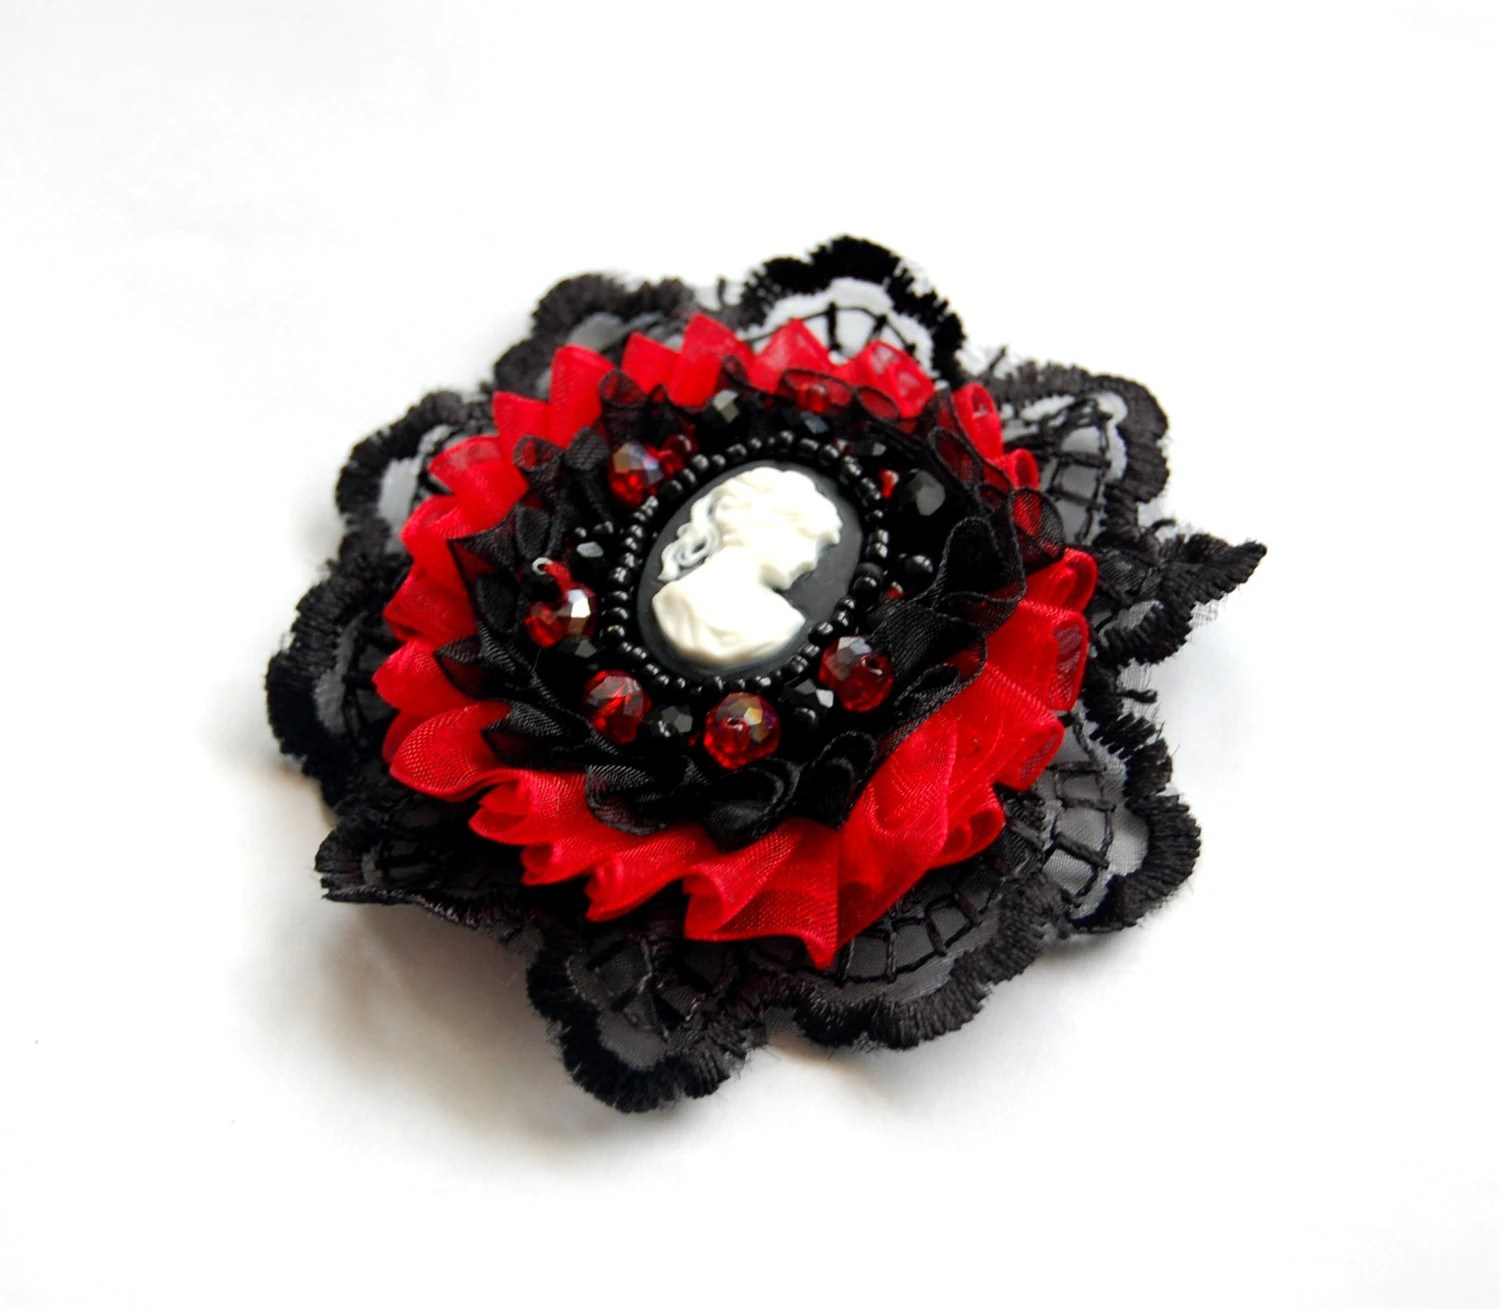 Red and black gothic victorian cameo brooch - Aesthetica91